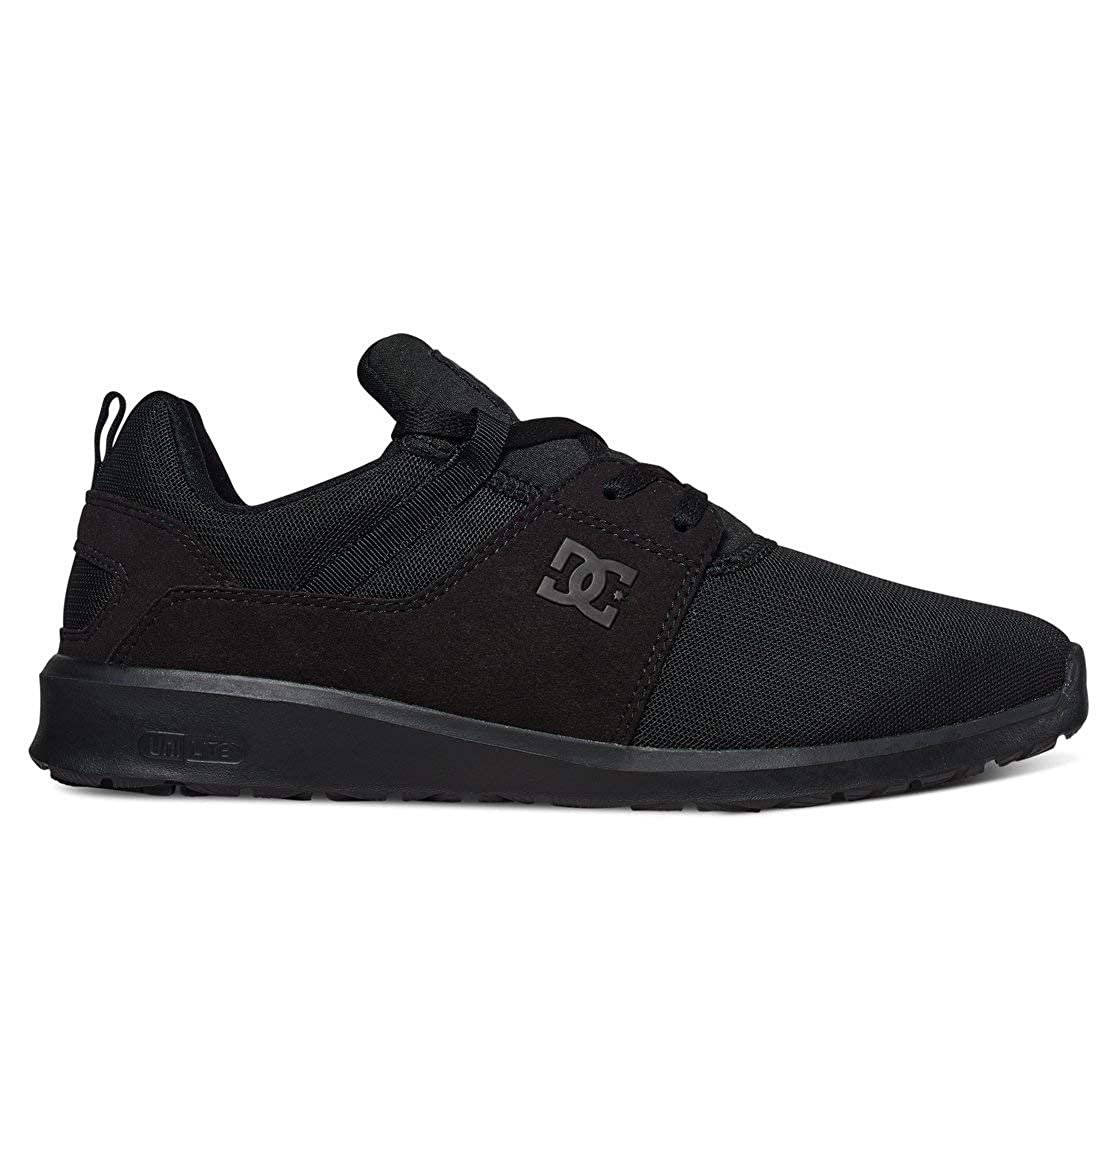 TALLA 47 EU. DC Shoes (DCSHI) Heathrow-Low-Top Shoes For Men, Zapatillas de Skateboard para Hombre